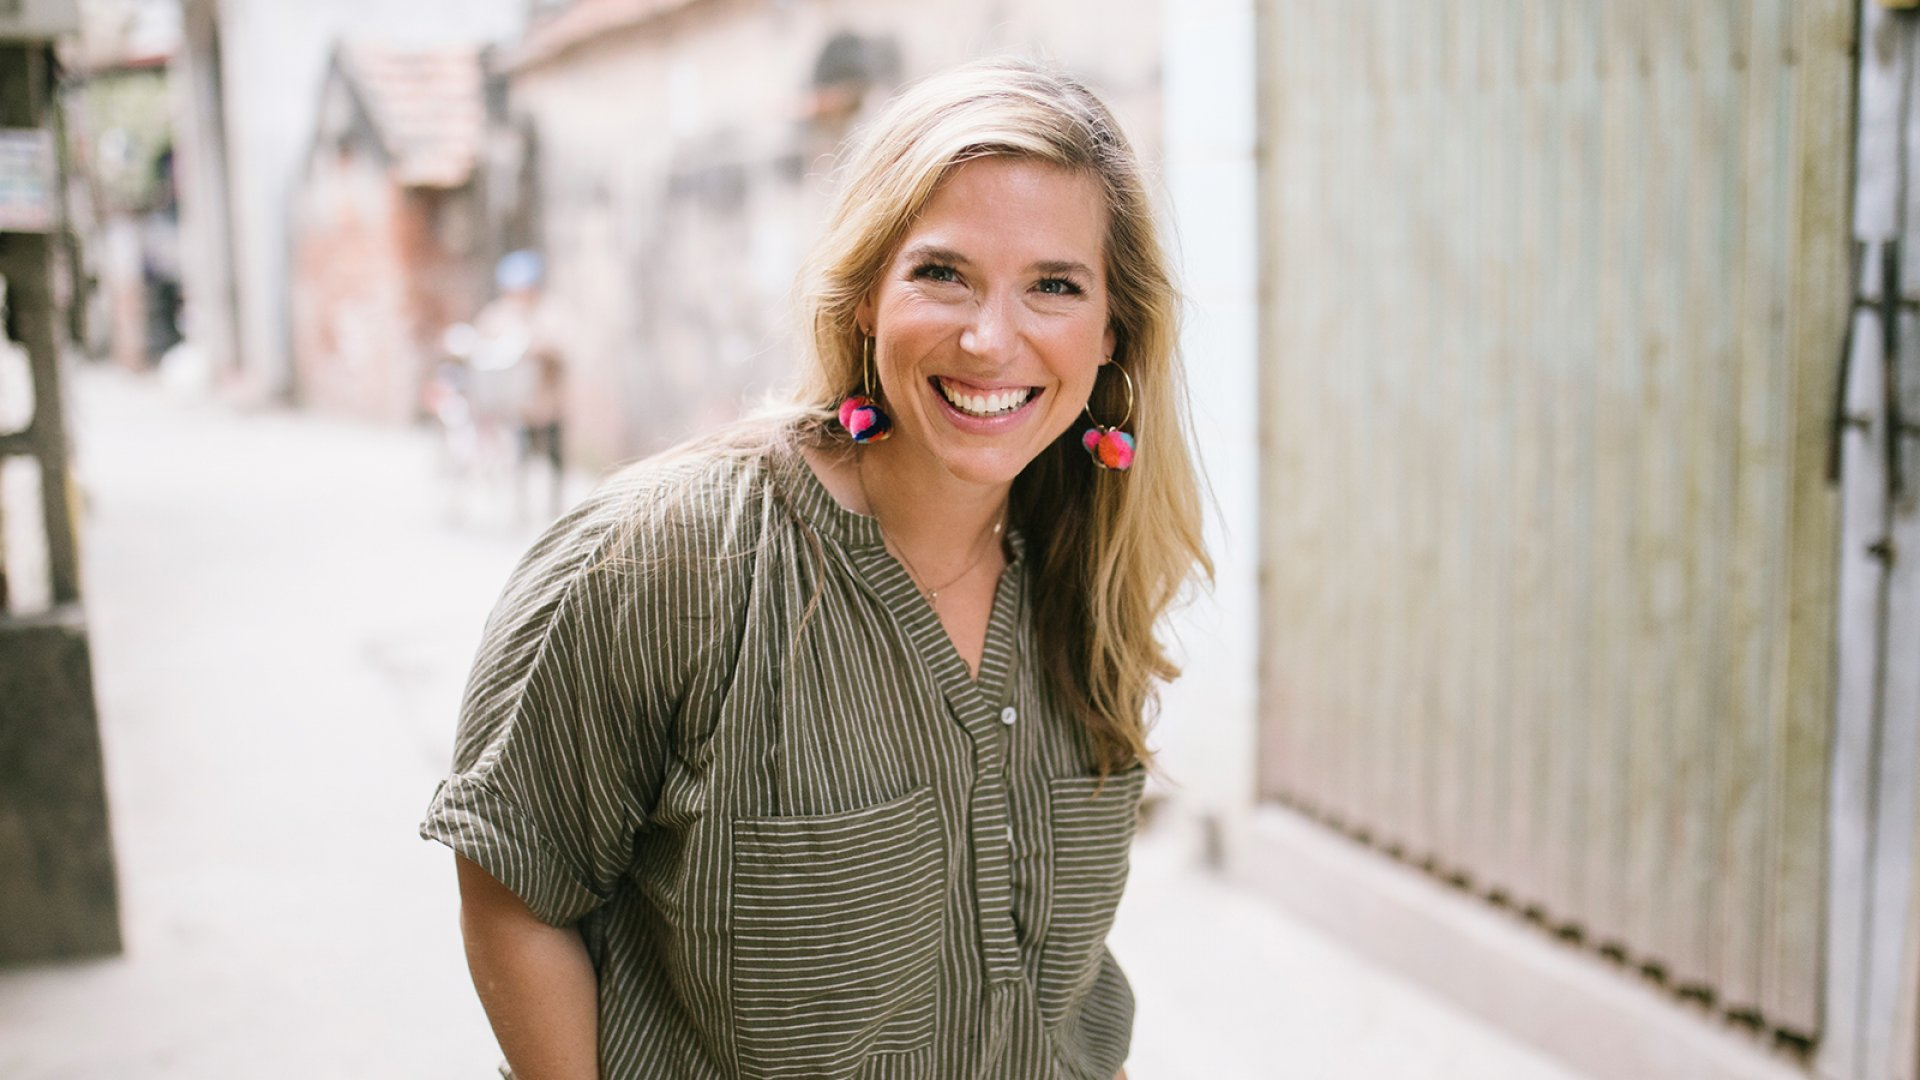 Noonday Collection founder Jessica Honegger.